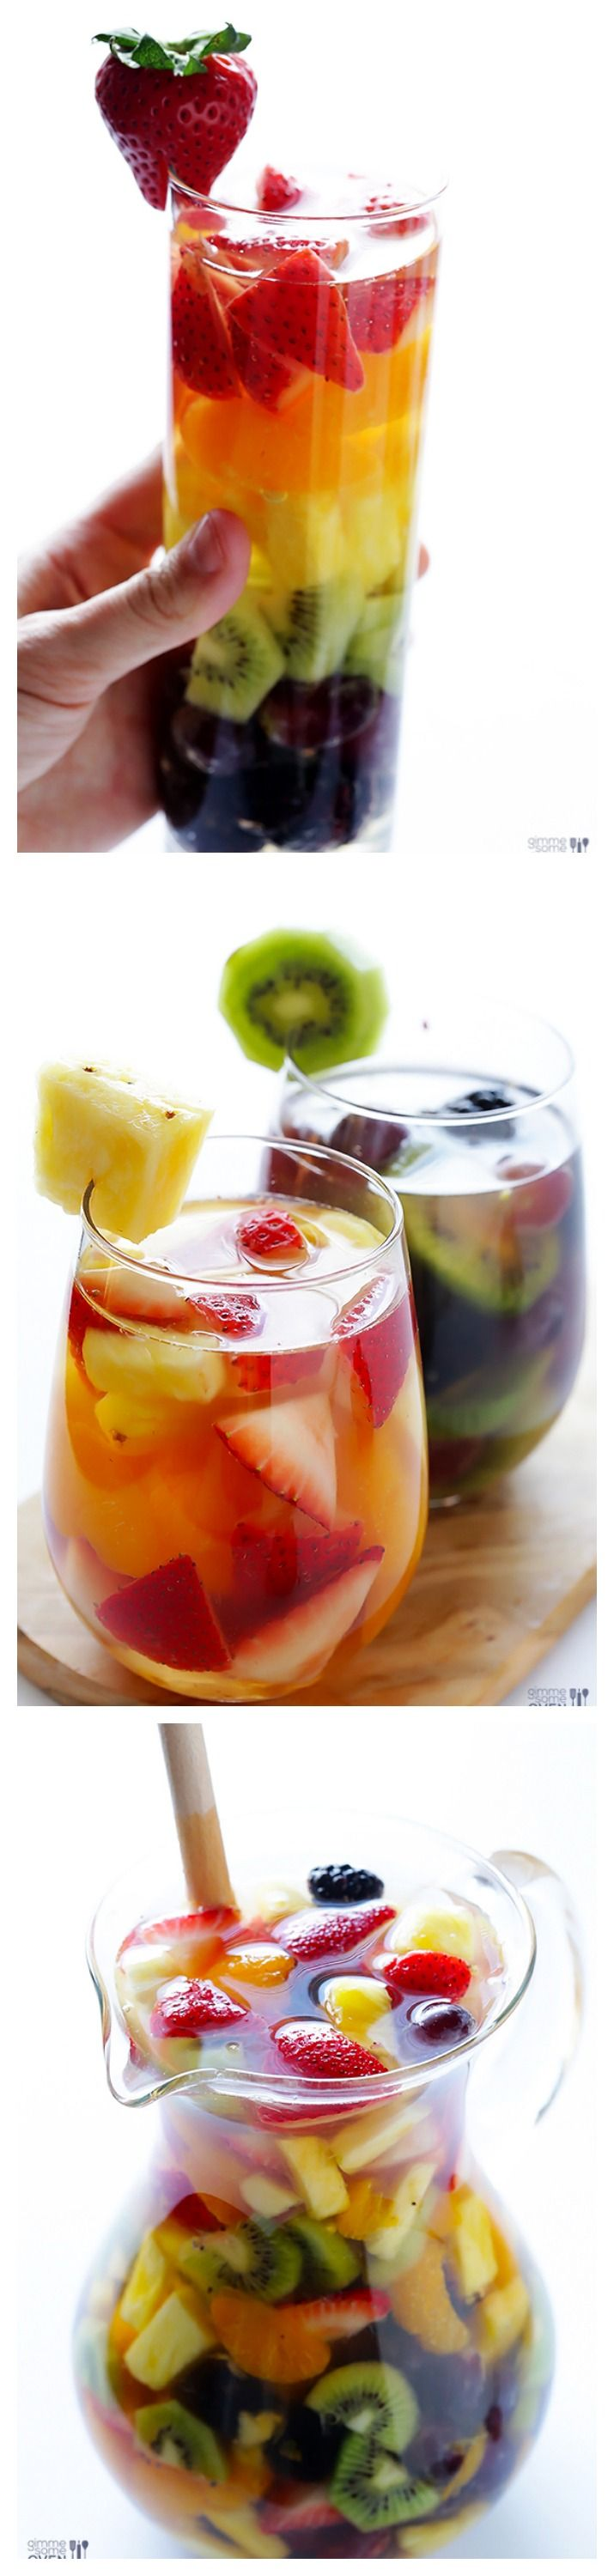 Rainbow Sangria -- Taste the rainbow with this easy white wine sangria recipe!  It's super fun, and super delish! | via @Ali Velez Velez Velez Ebright (Gimme Some Oven)